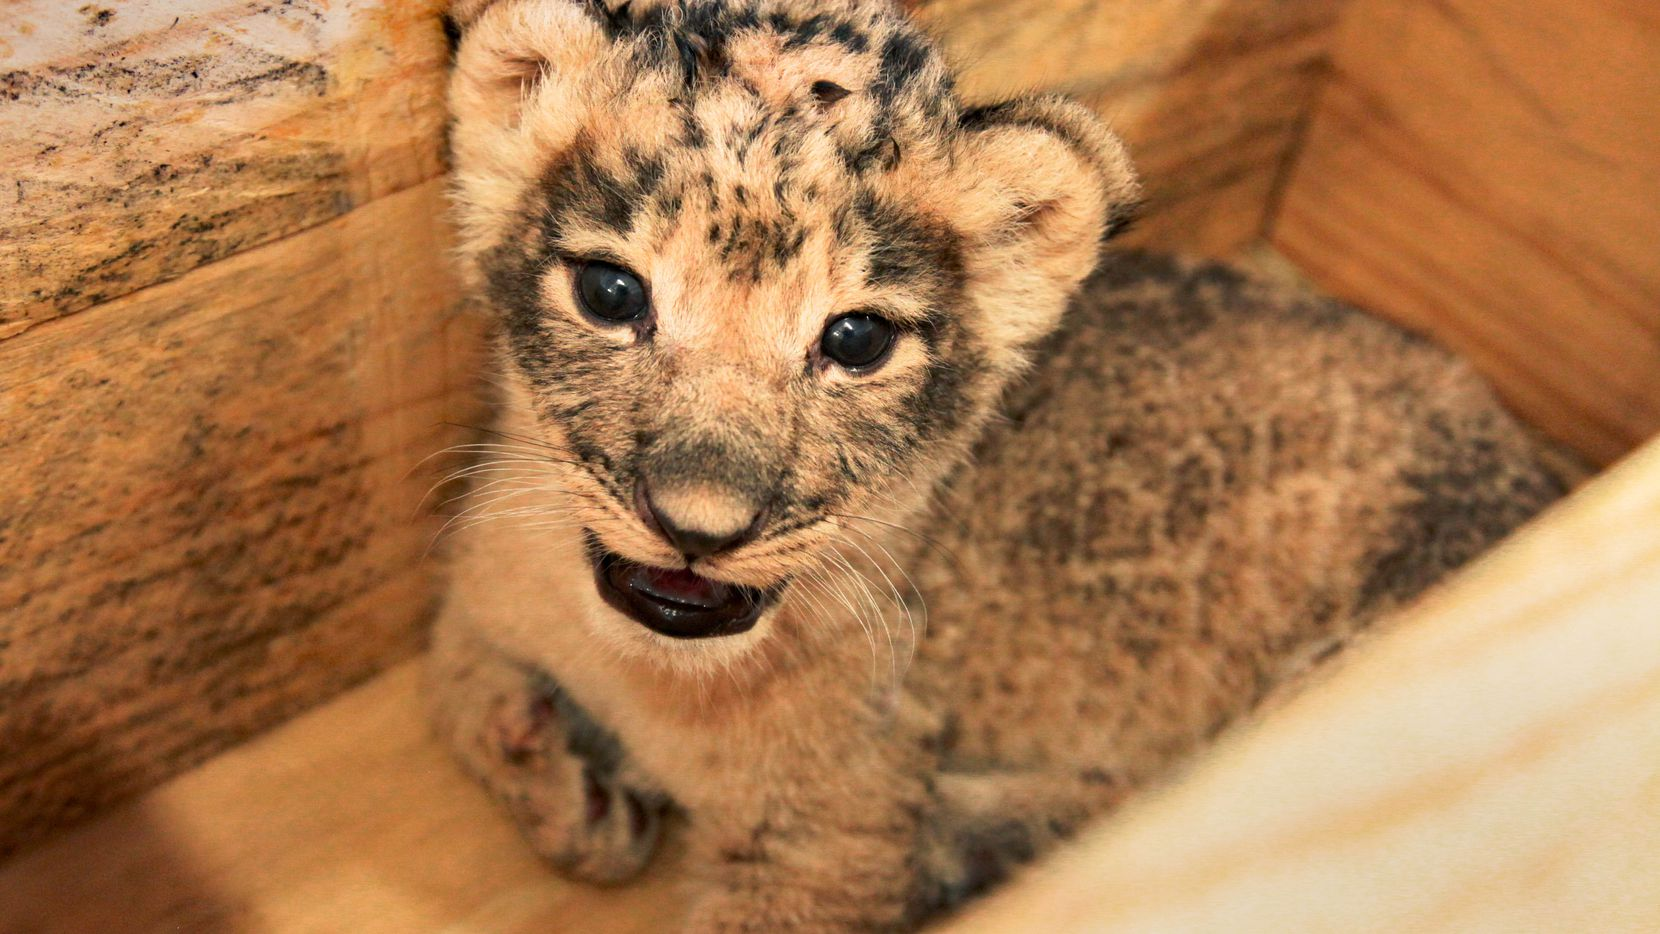 One of two female cubs born at the Dallas Zoo on August 17, 2020, weighs in at 2.1 kilograms after two weeks. The two, along with a male cub, represent the zoo's first new African lion litter since 1974.